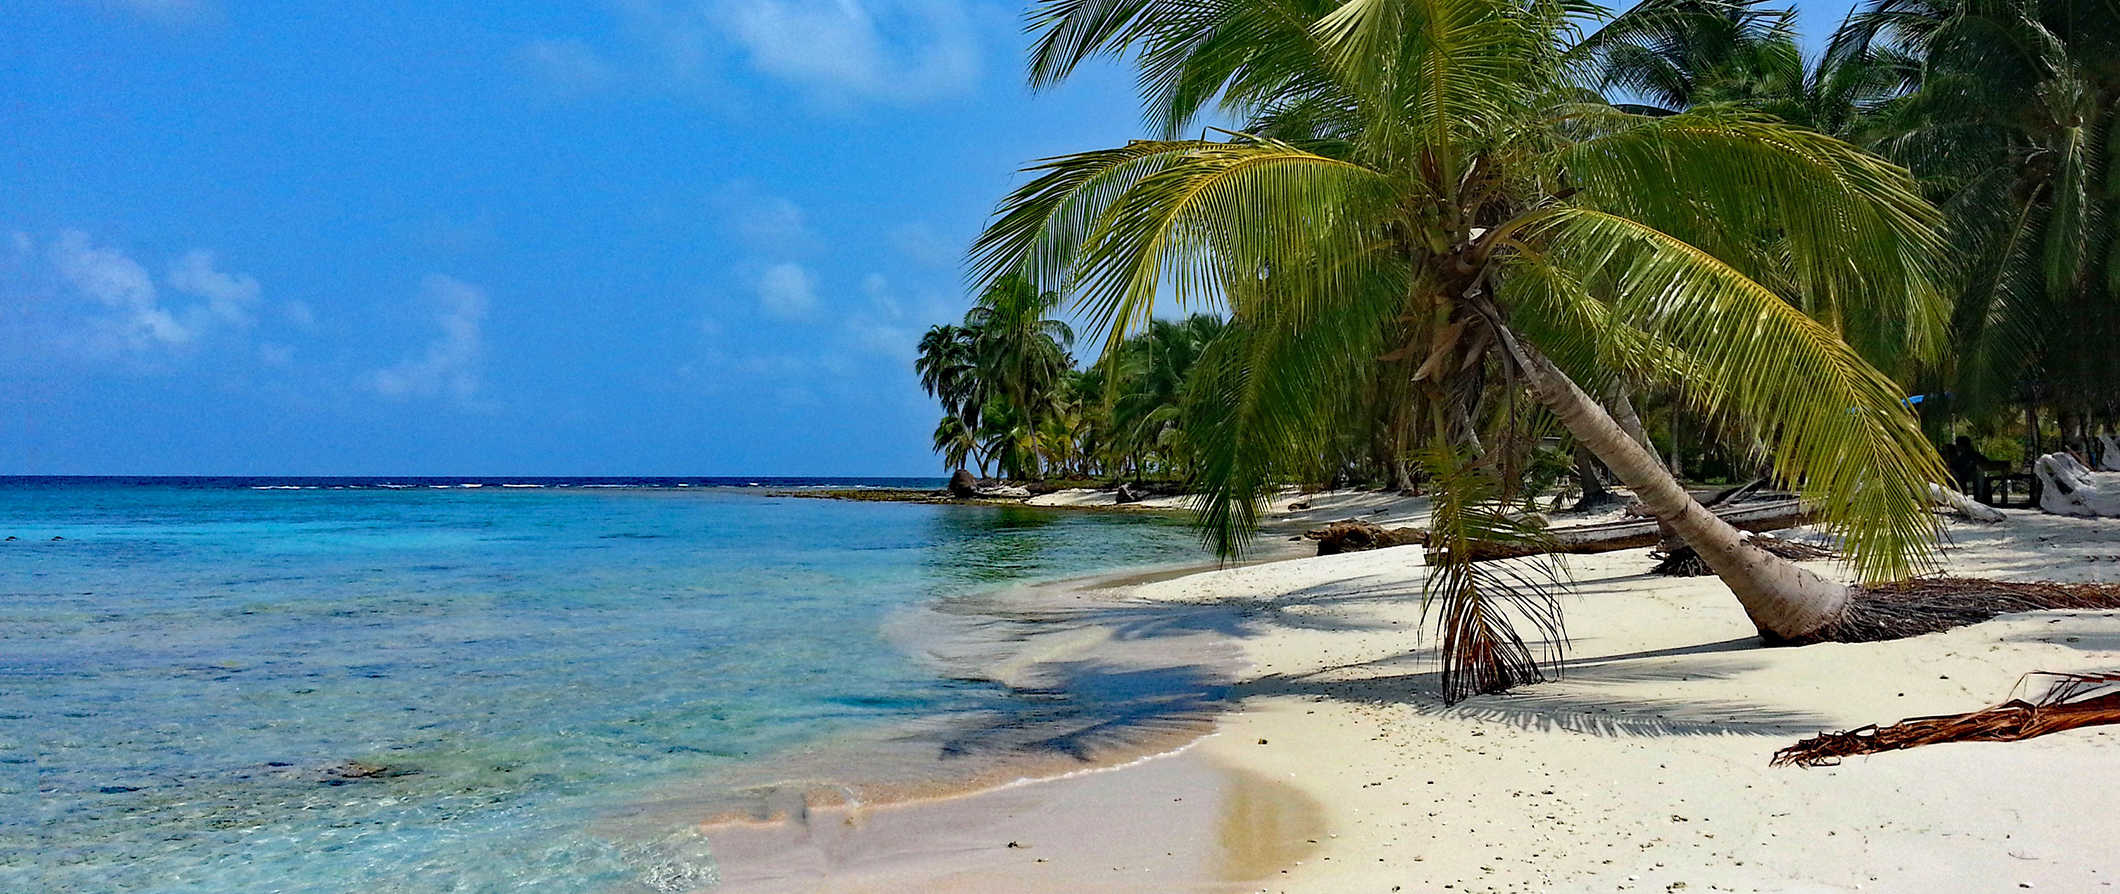 tropical palm trees and beaches in Panama